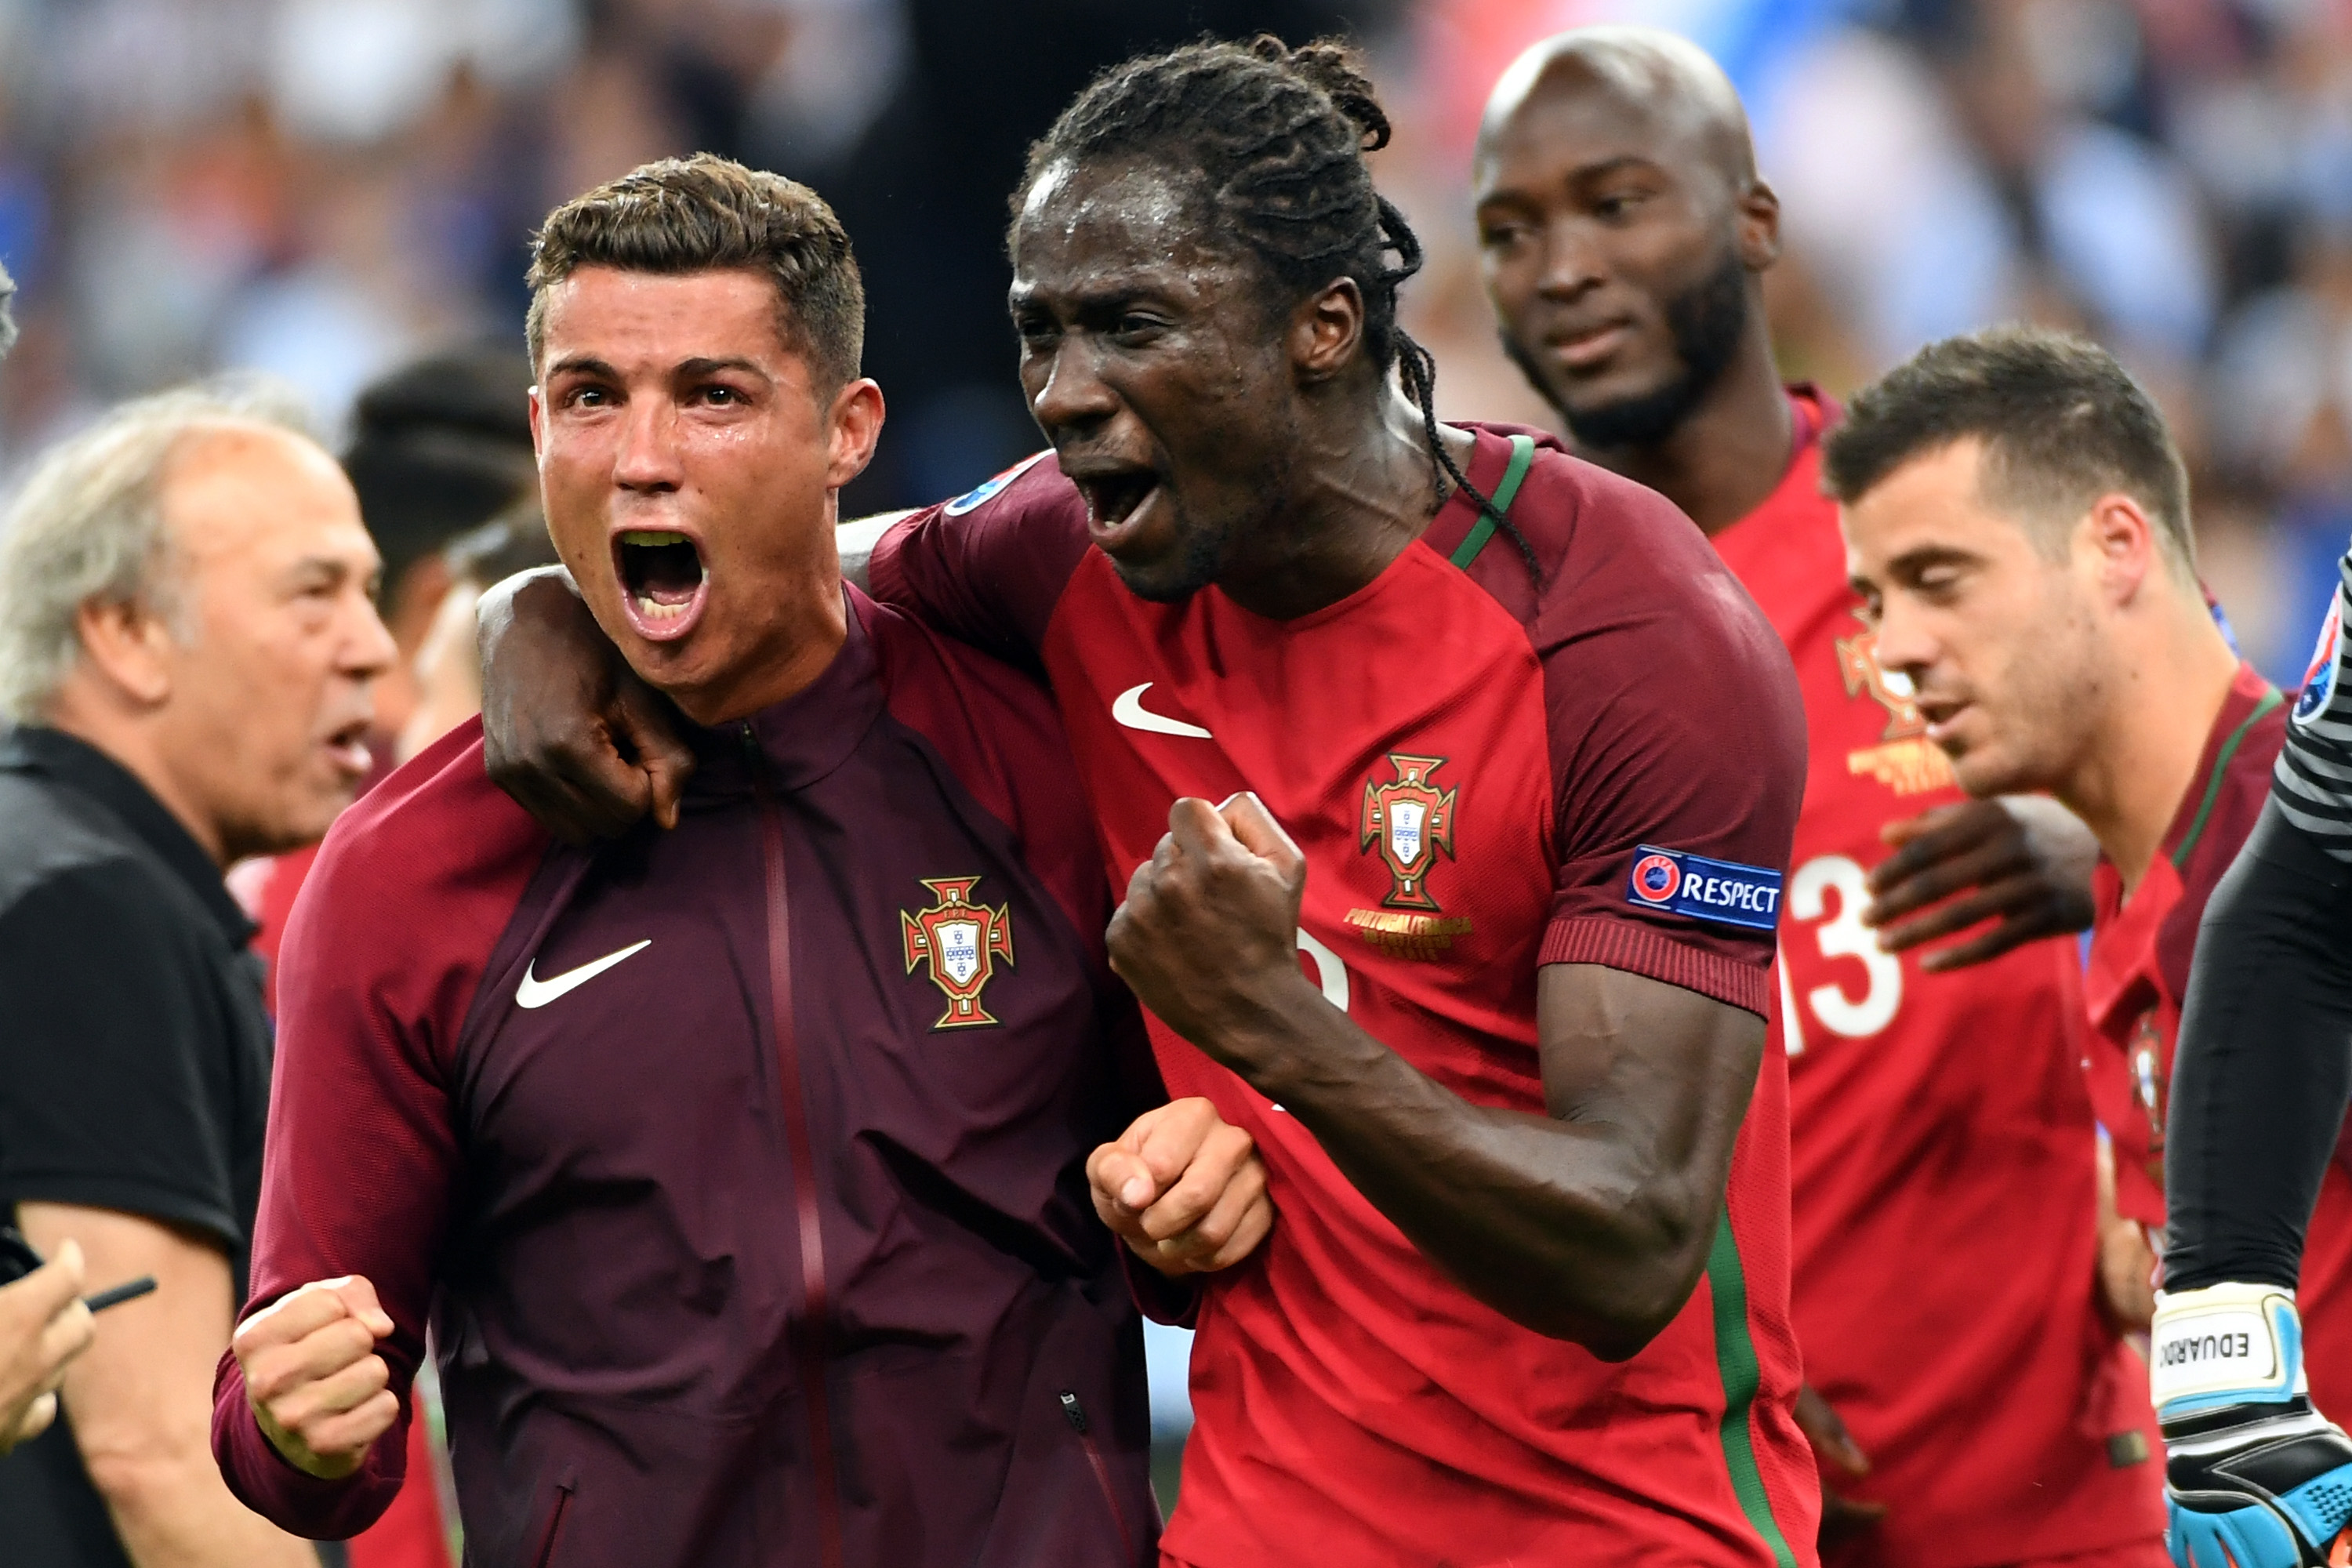 Cristiano Ronaldo predicted Eder would score Euro 2016 Portugal winner